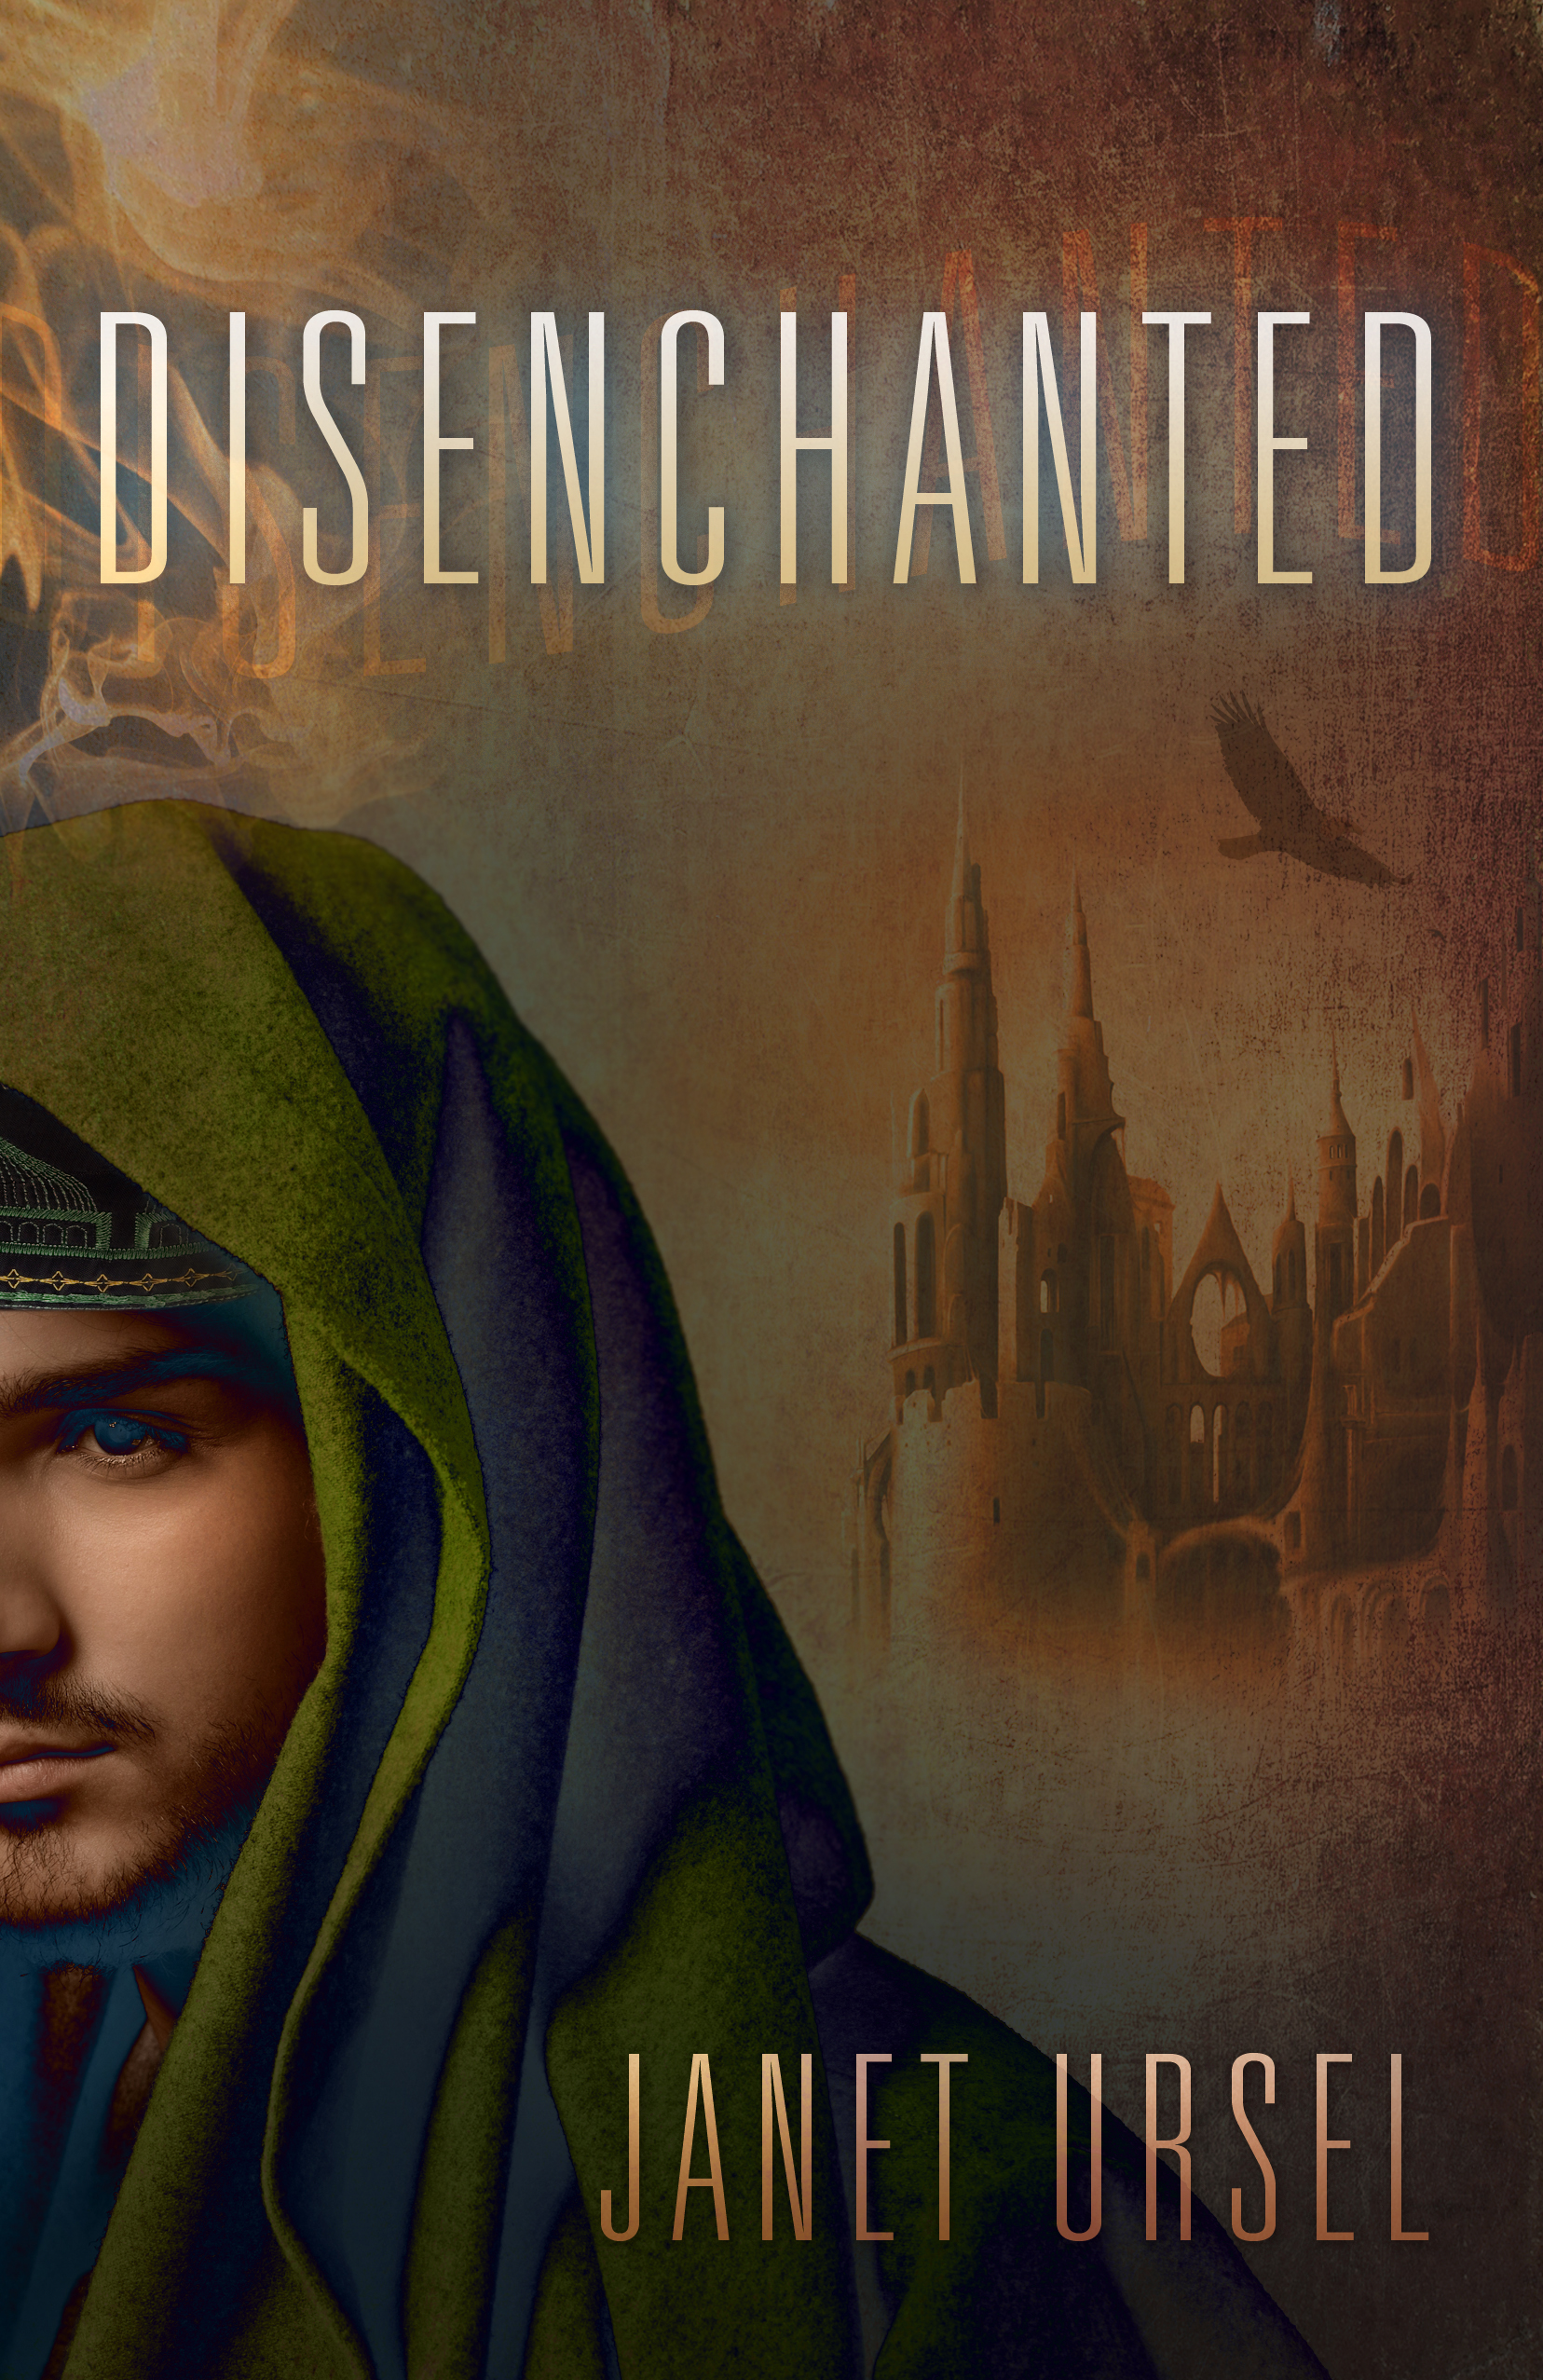 Disenchanted by Janet Ursel